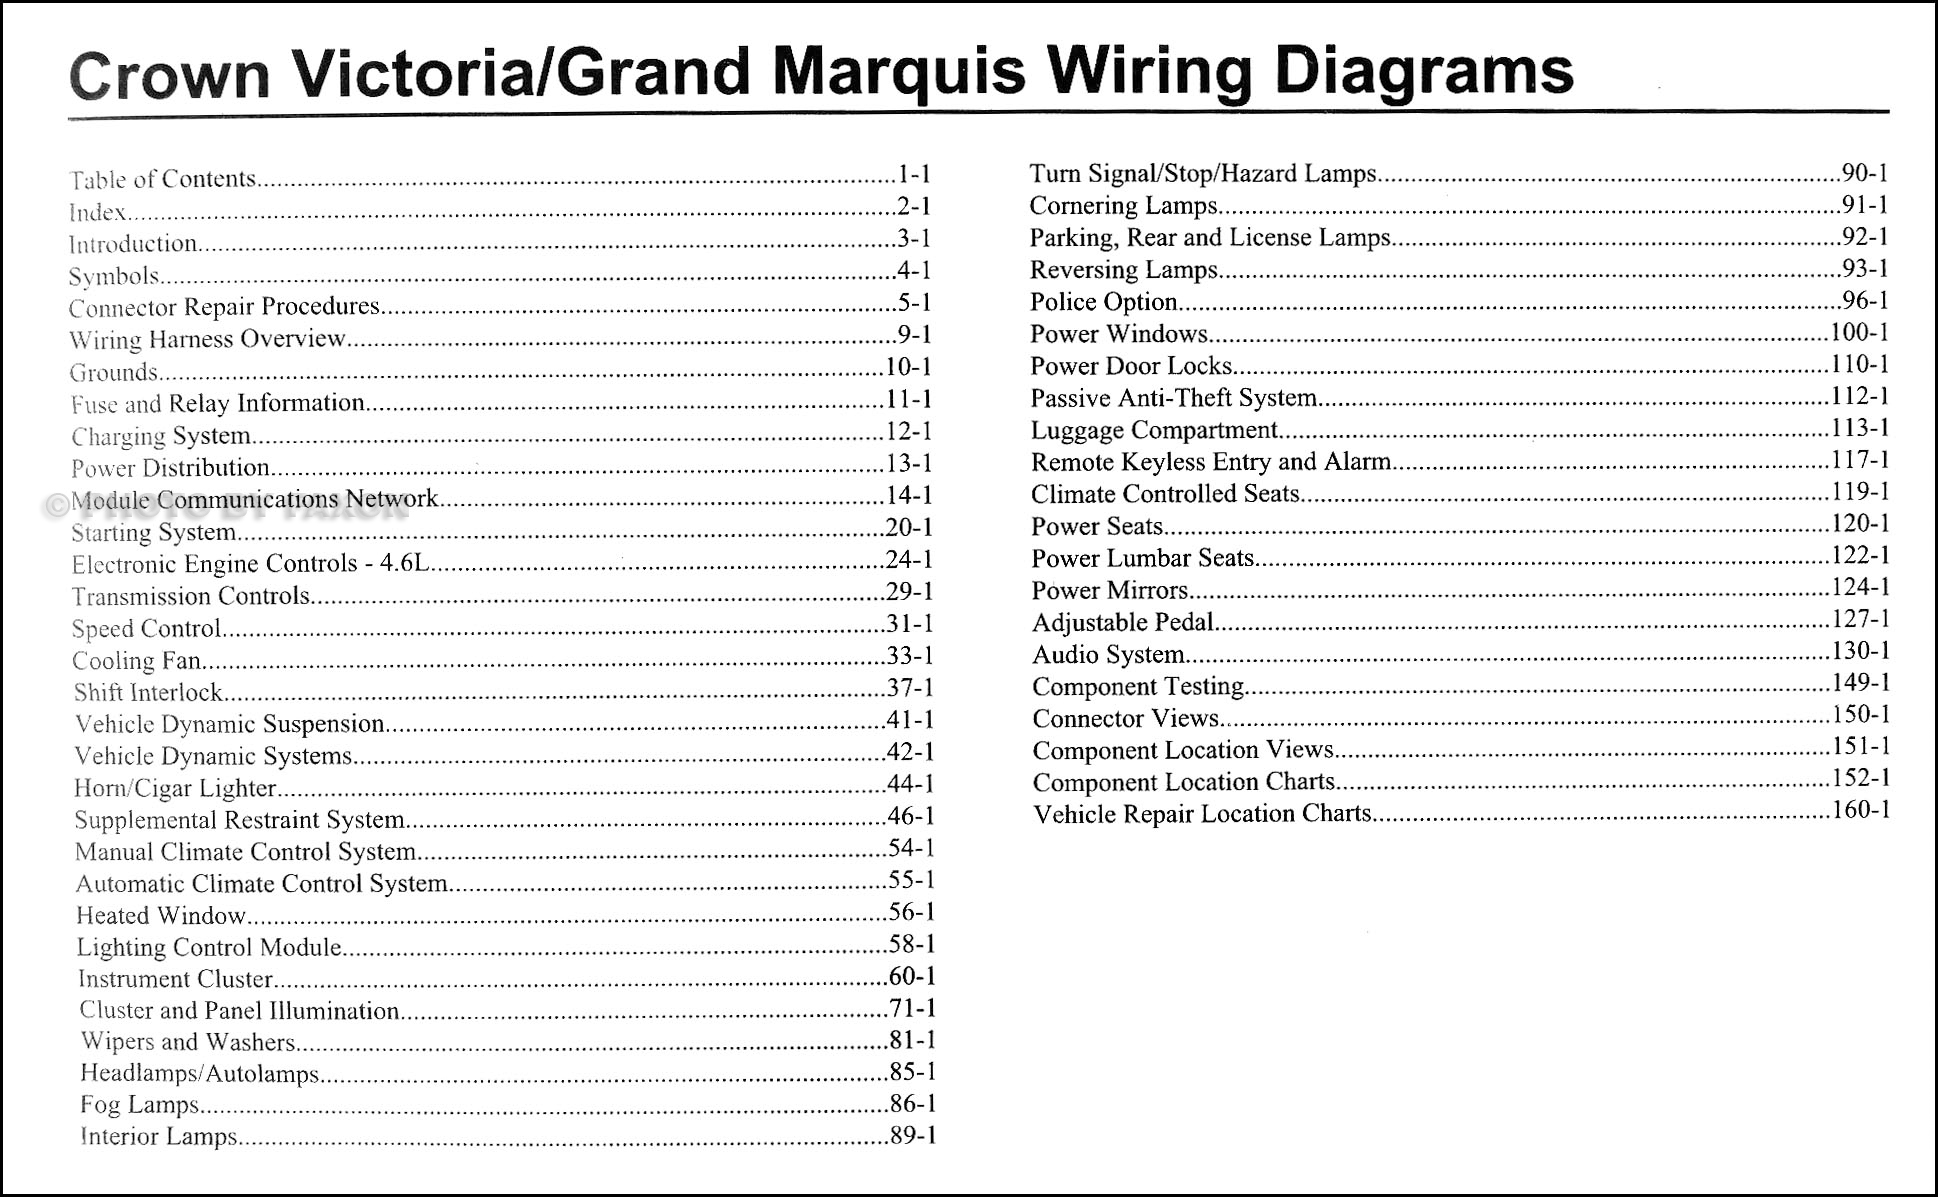 2009 Crown Victoria Grand Marquis Original Wiring Diagram Manual Ford Radio Connector Table Of Contents